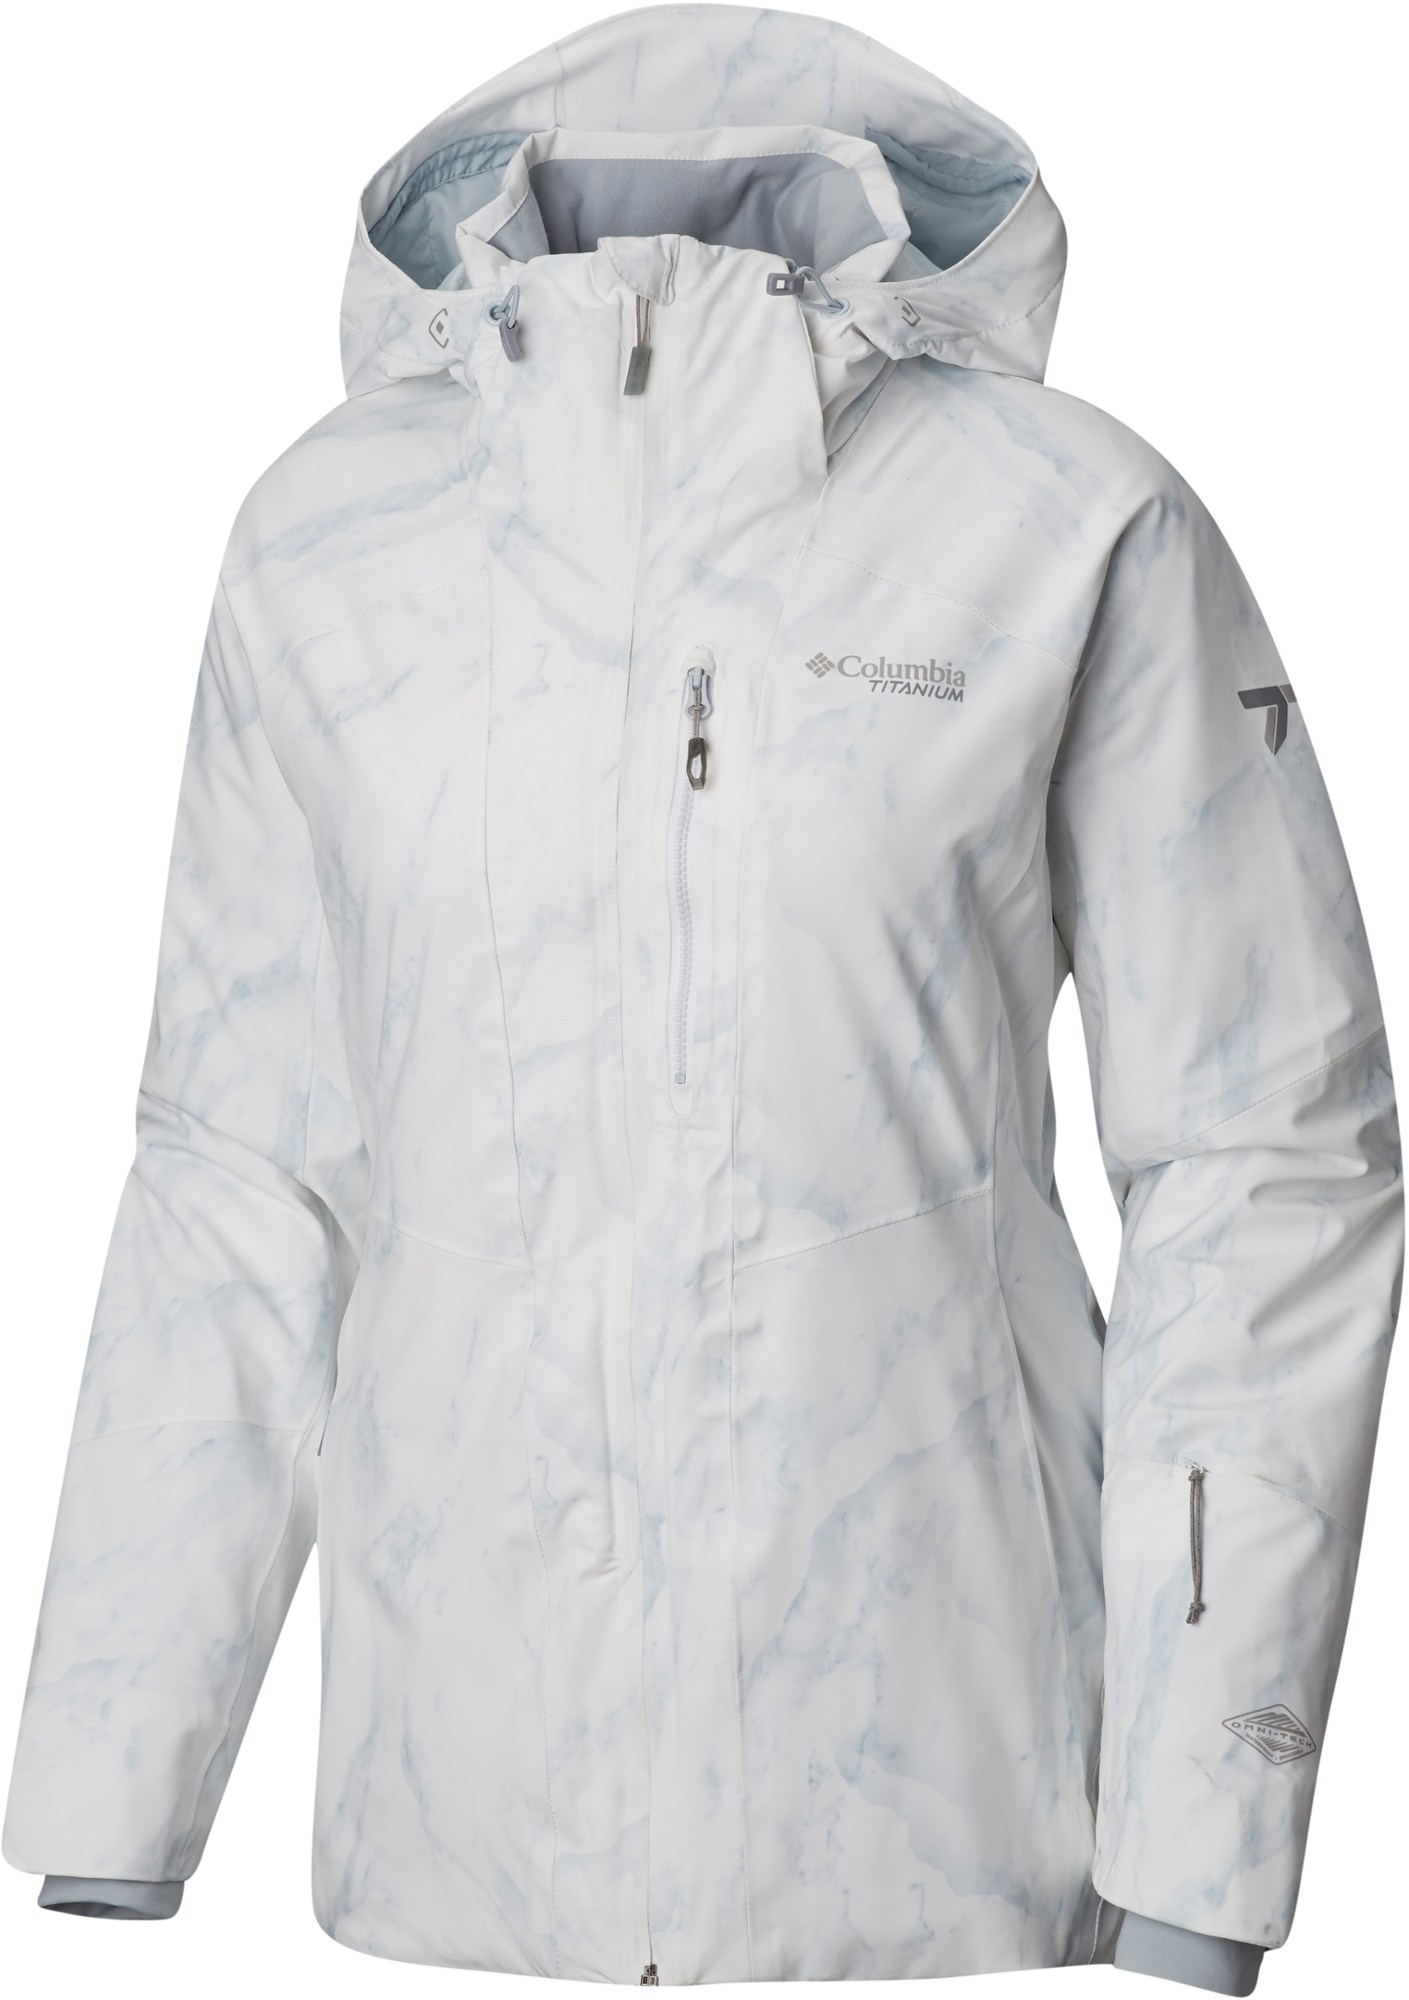 Columbia Snow Rival Insulated Jacket - Women's